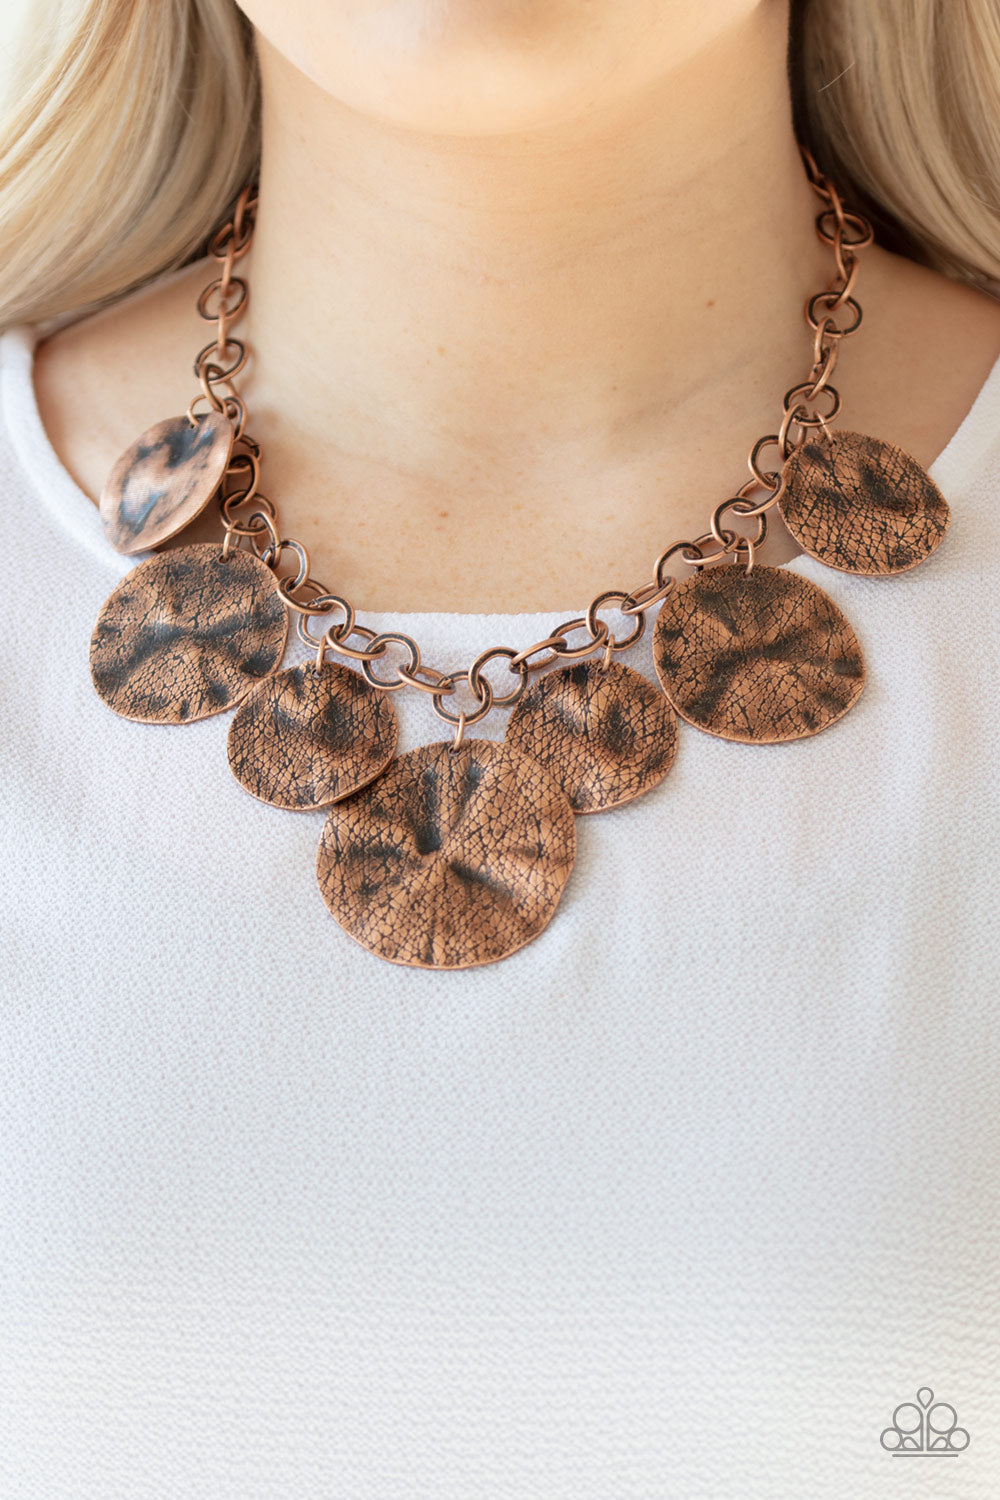 PaparazziJewelry & Accessories - Barely Scratched The Surface - Copper Necklace. Bling By Titia Boutique